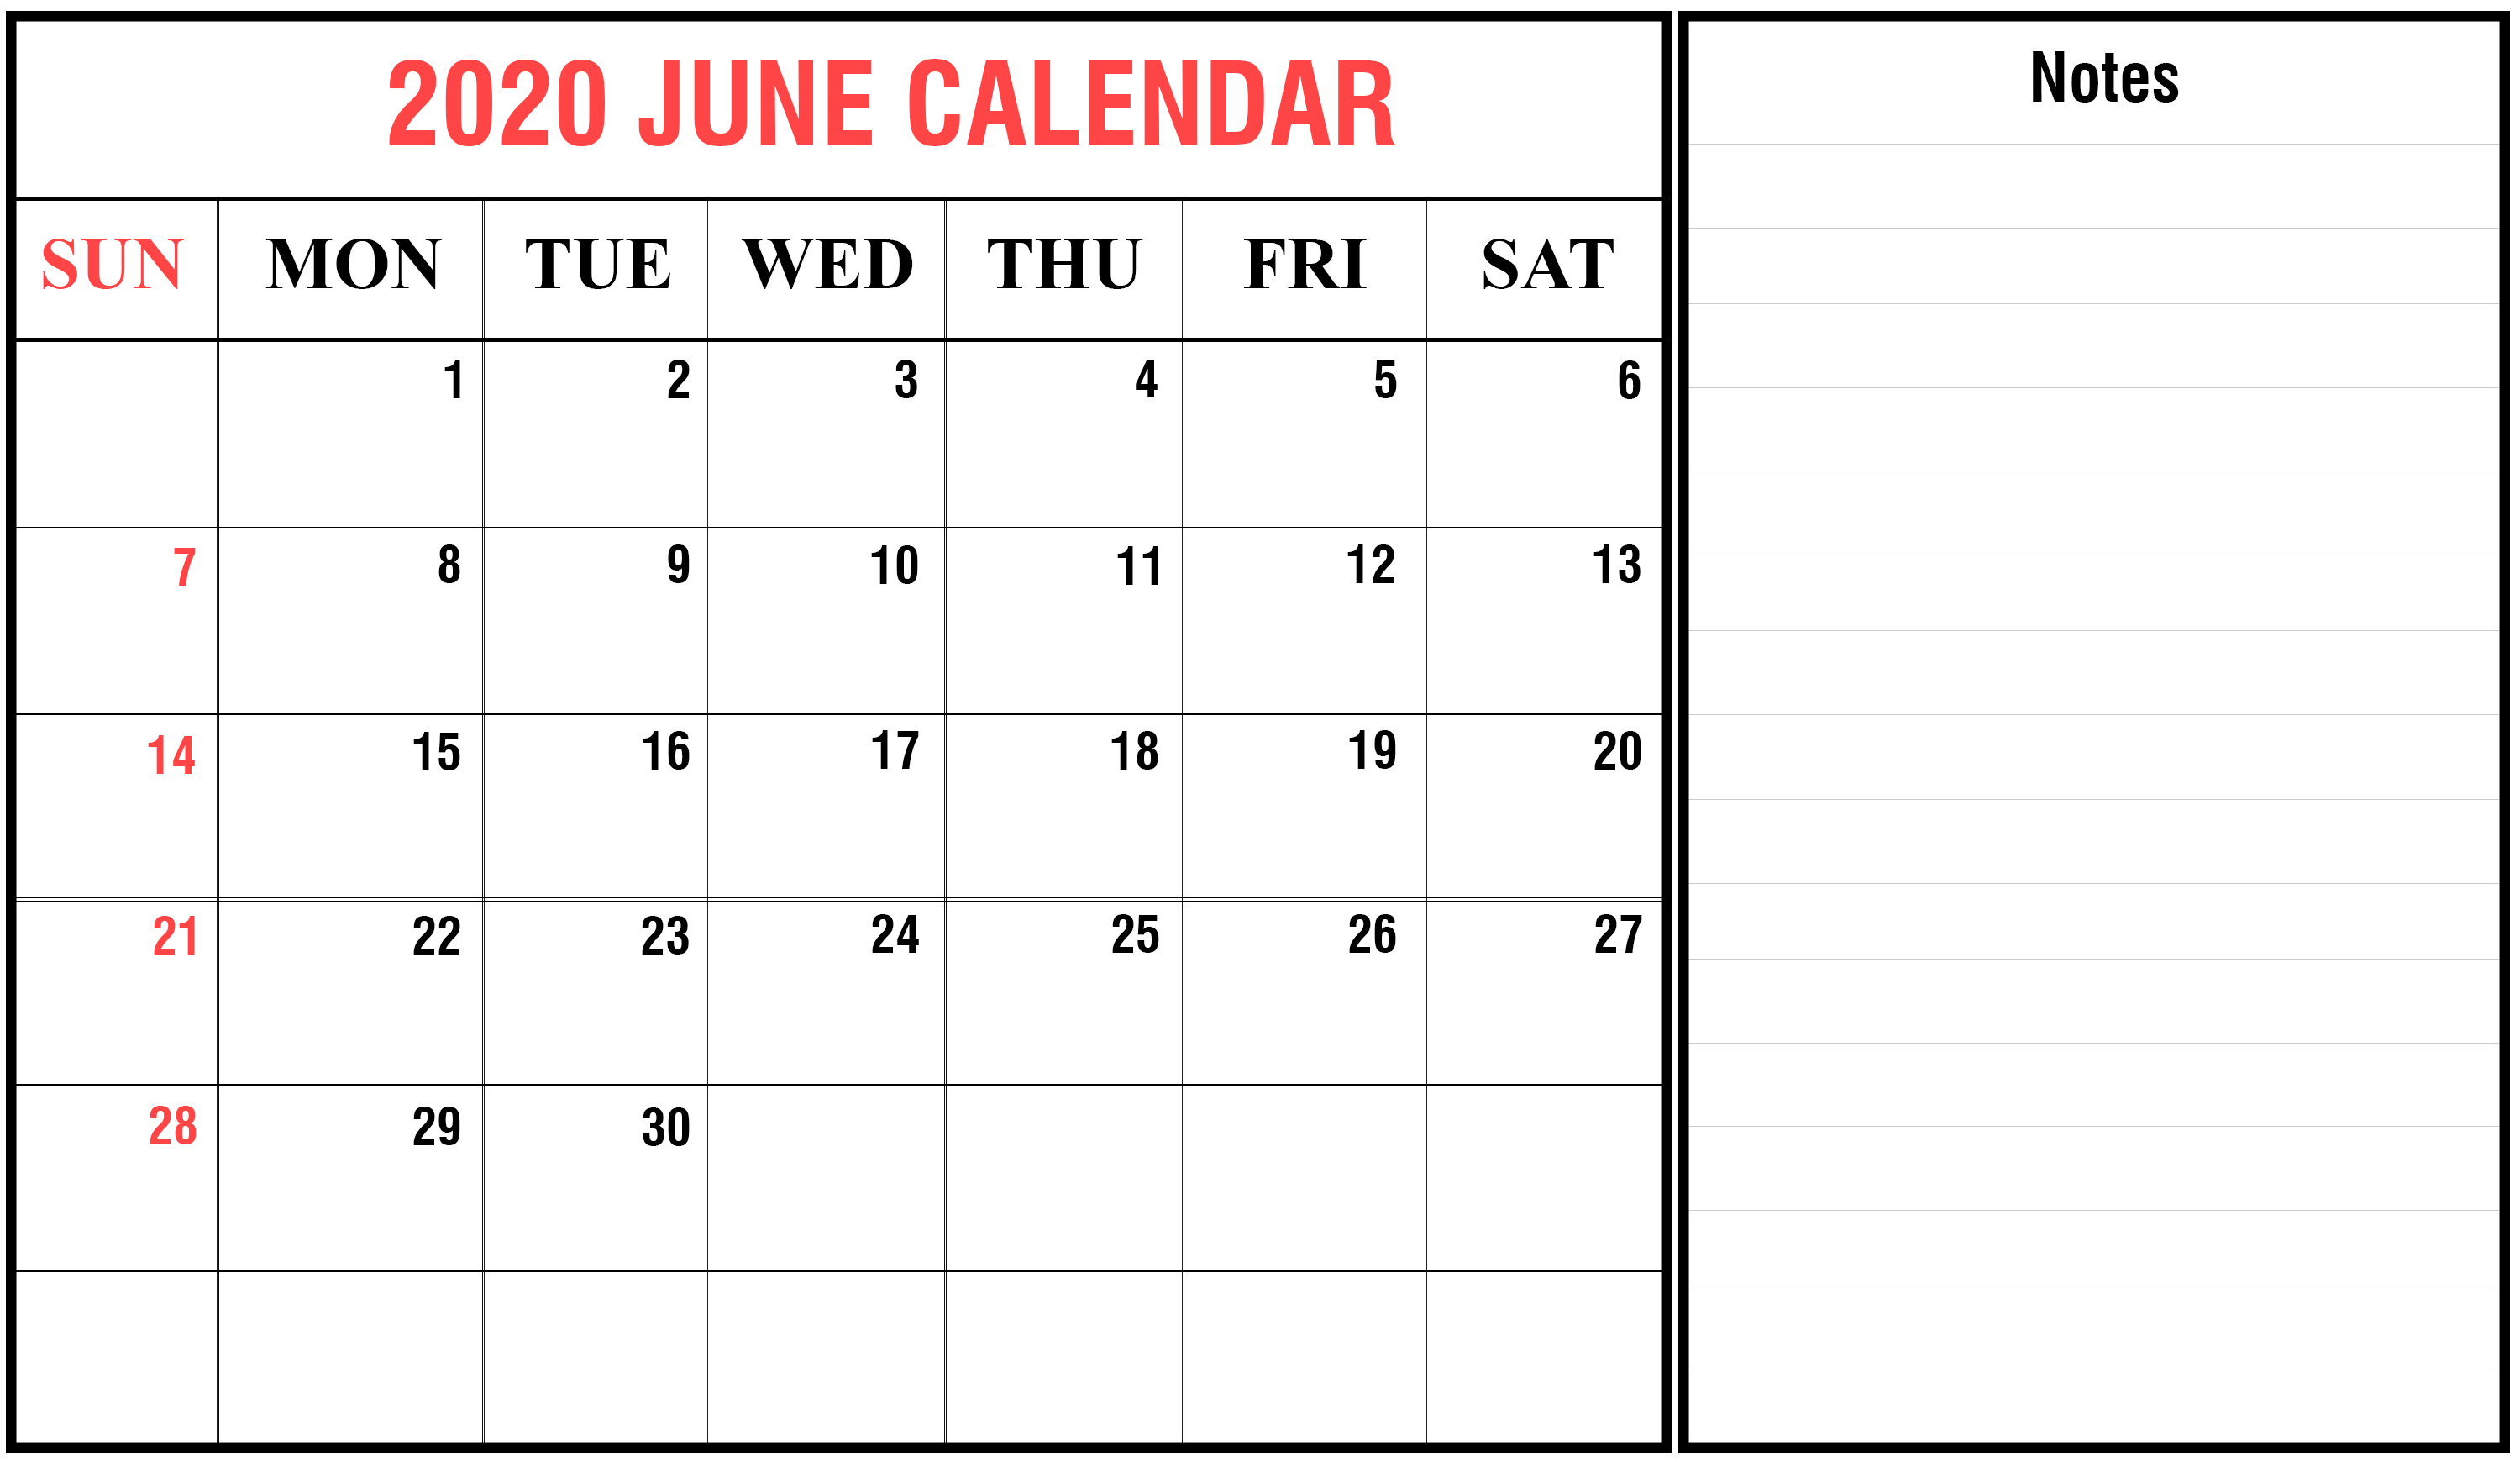 June 2020 Printable Calendar with Notes